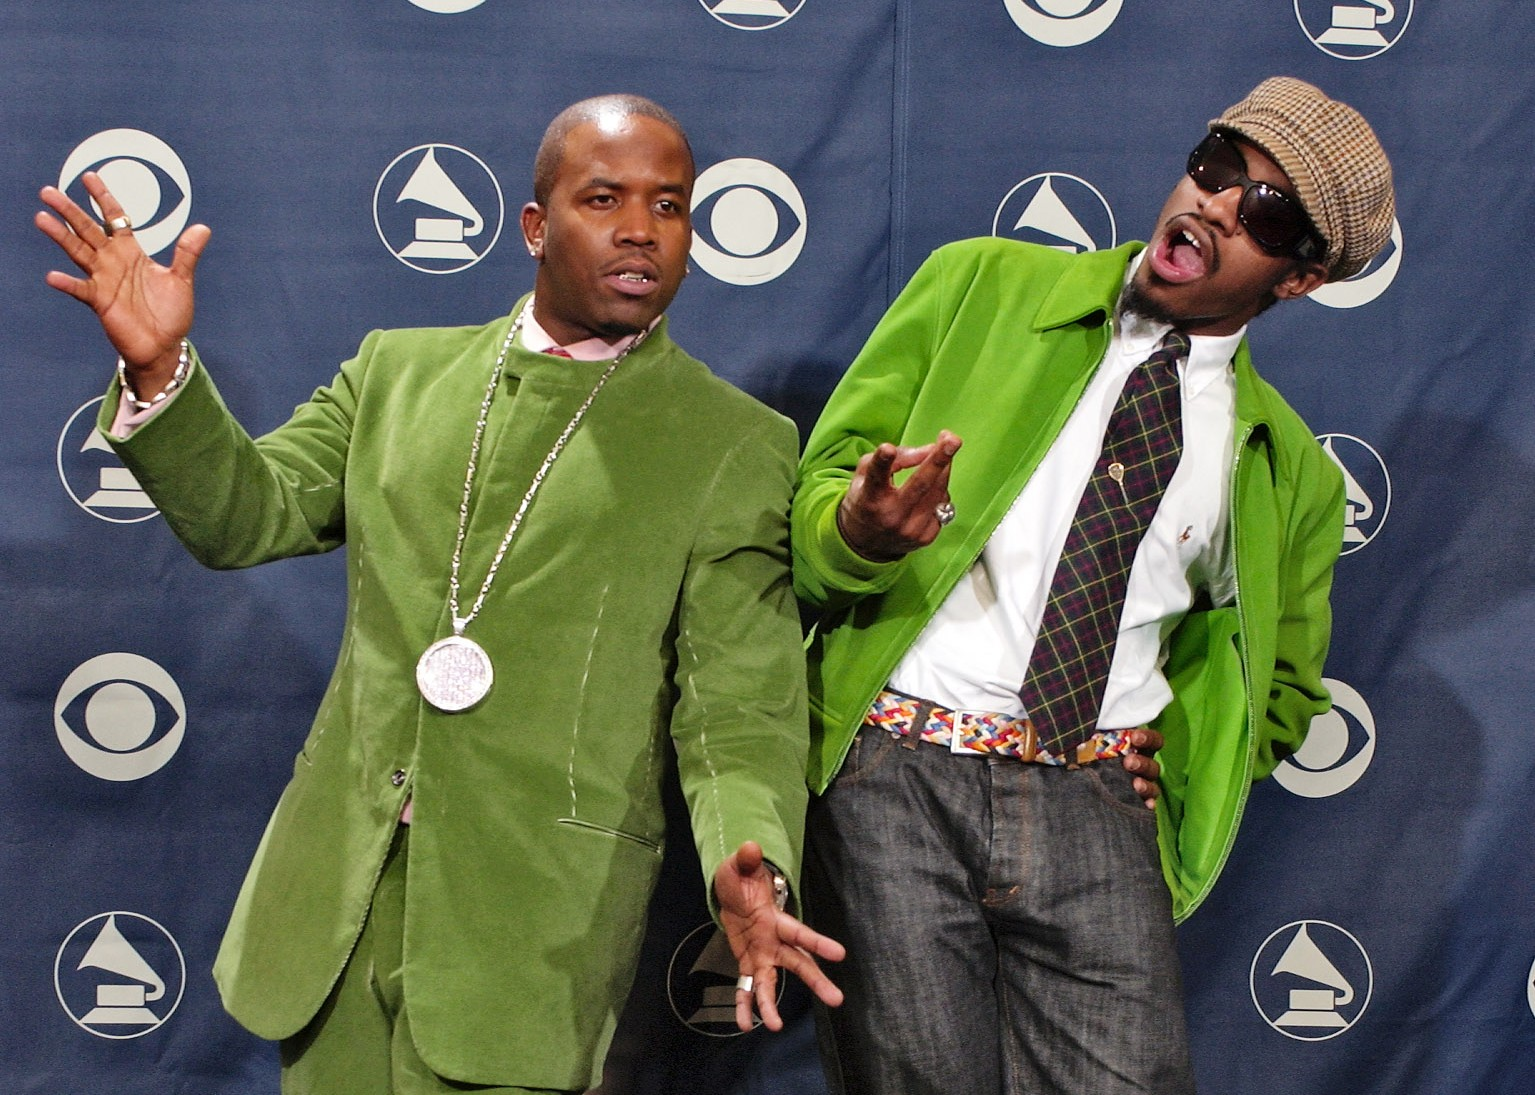 OutKast members Big Boi and Andre 3000 at the 2004 Grammy's (Picture: AP)